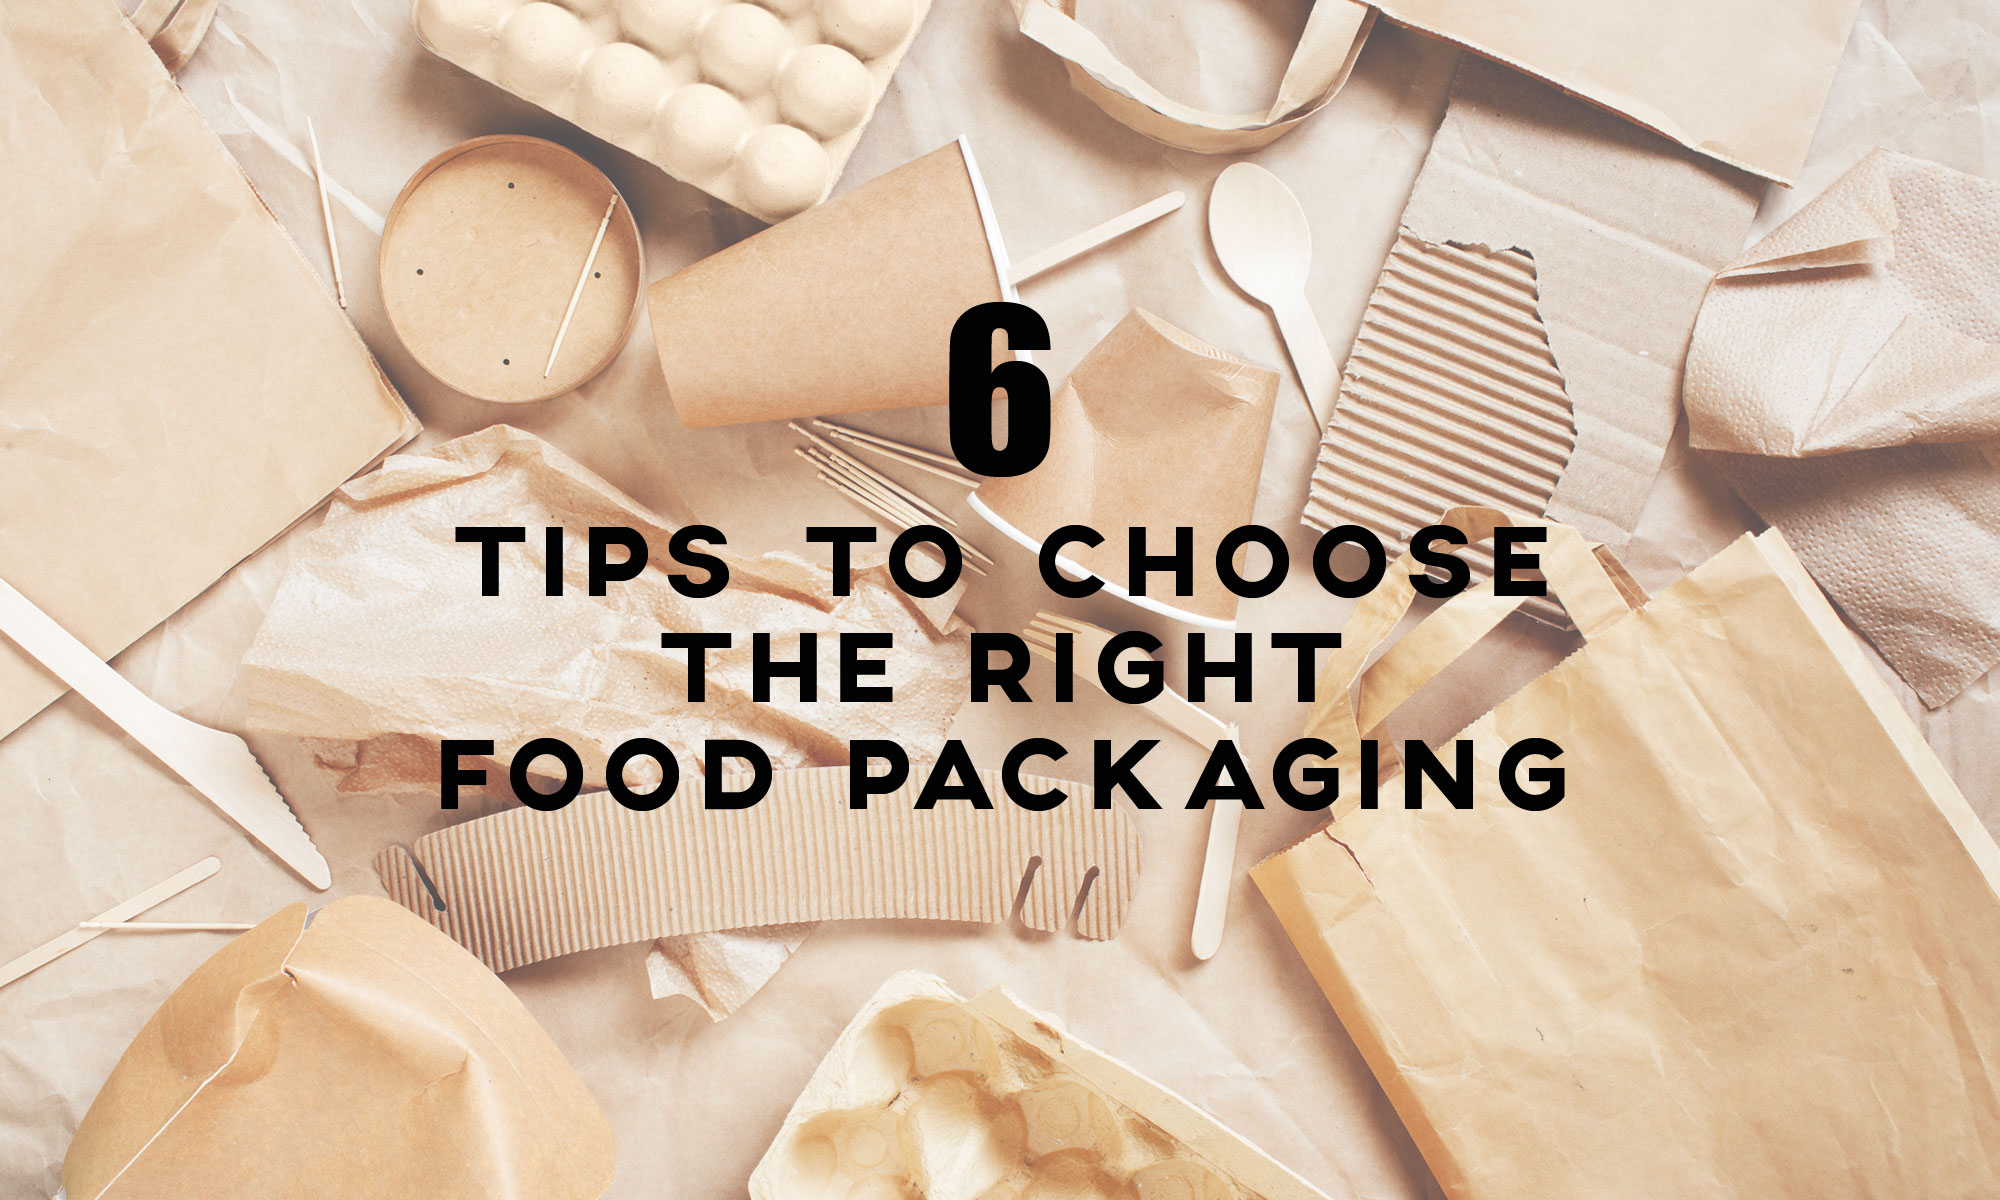 6 Tips to choose the right food packaging